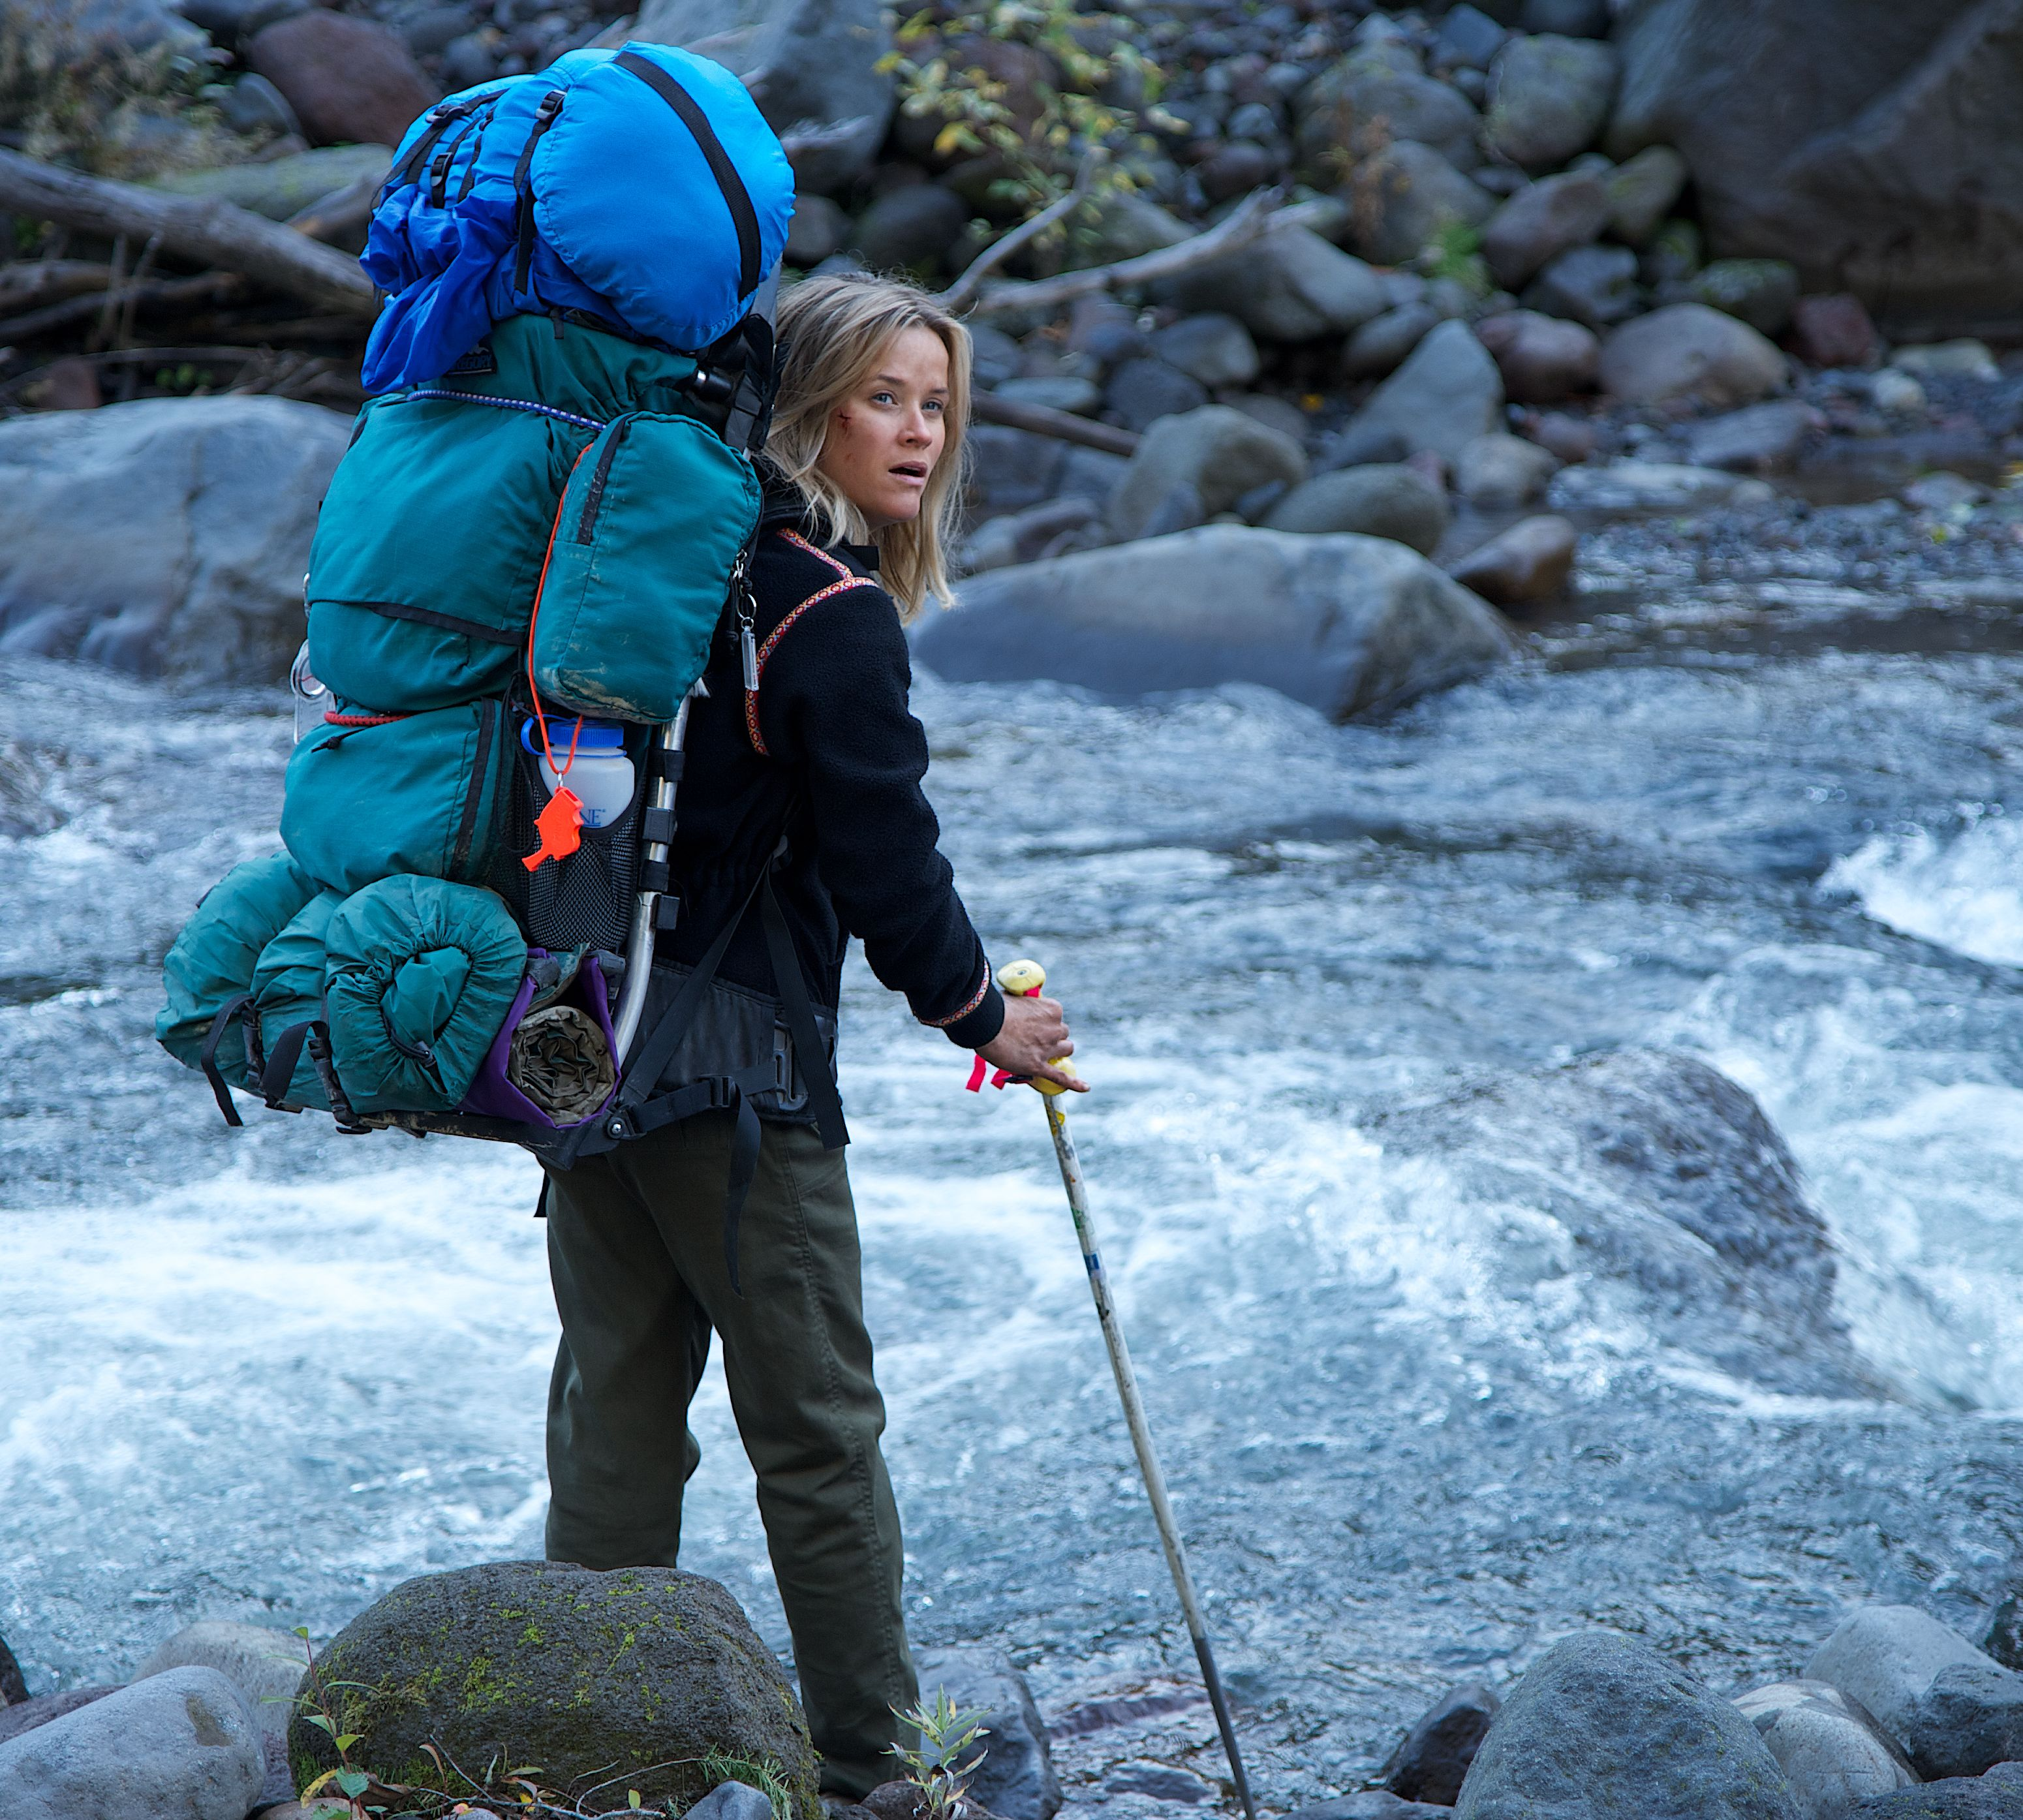 Reese Witherspoon at a rocky river - Wild